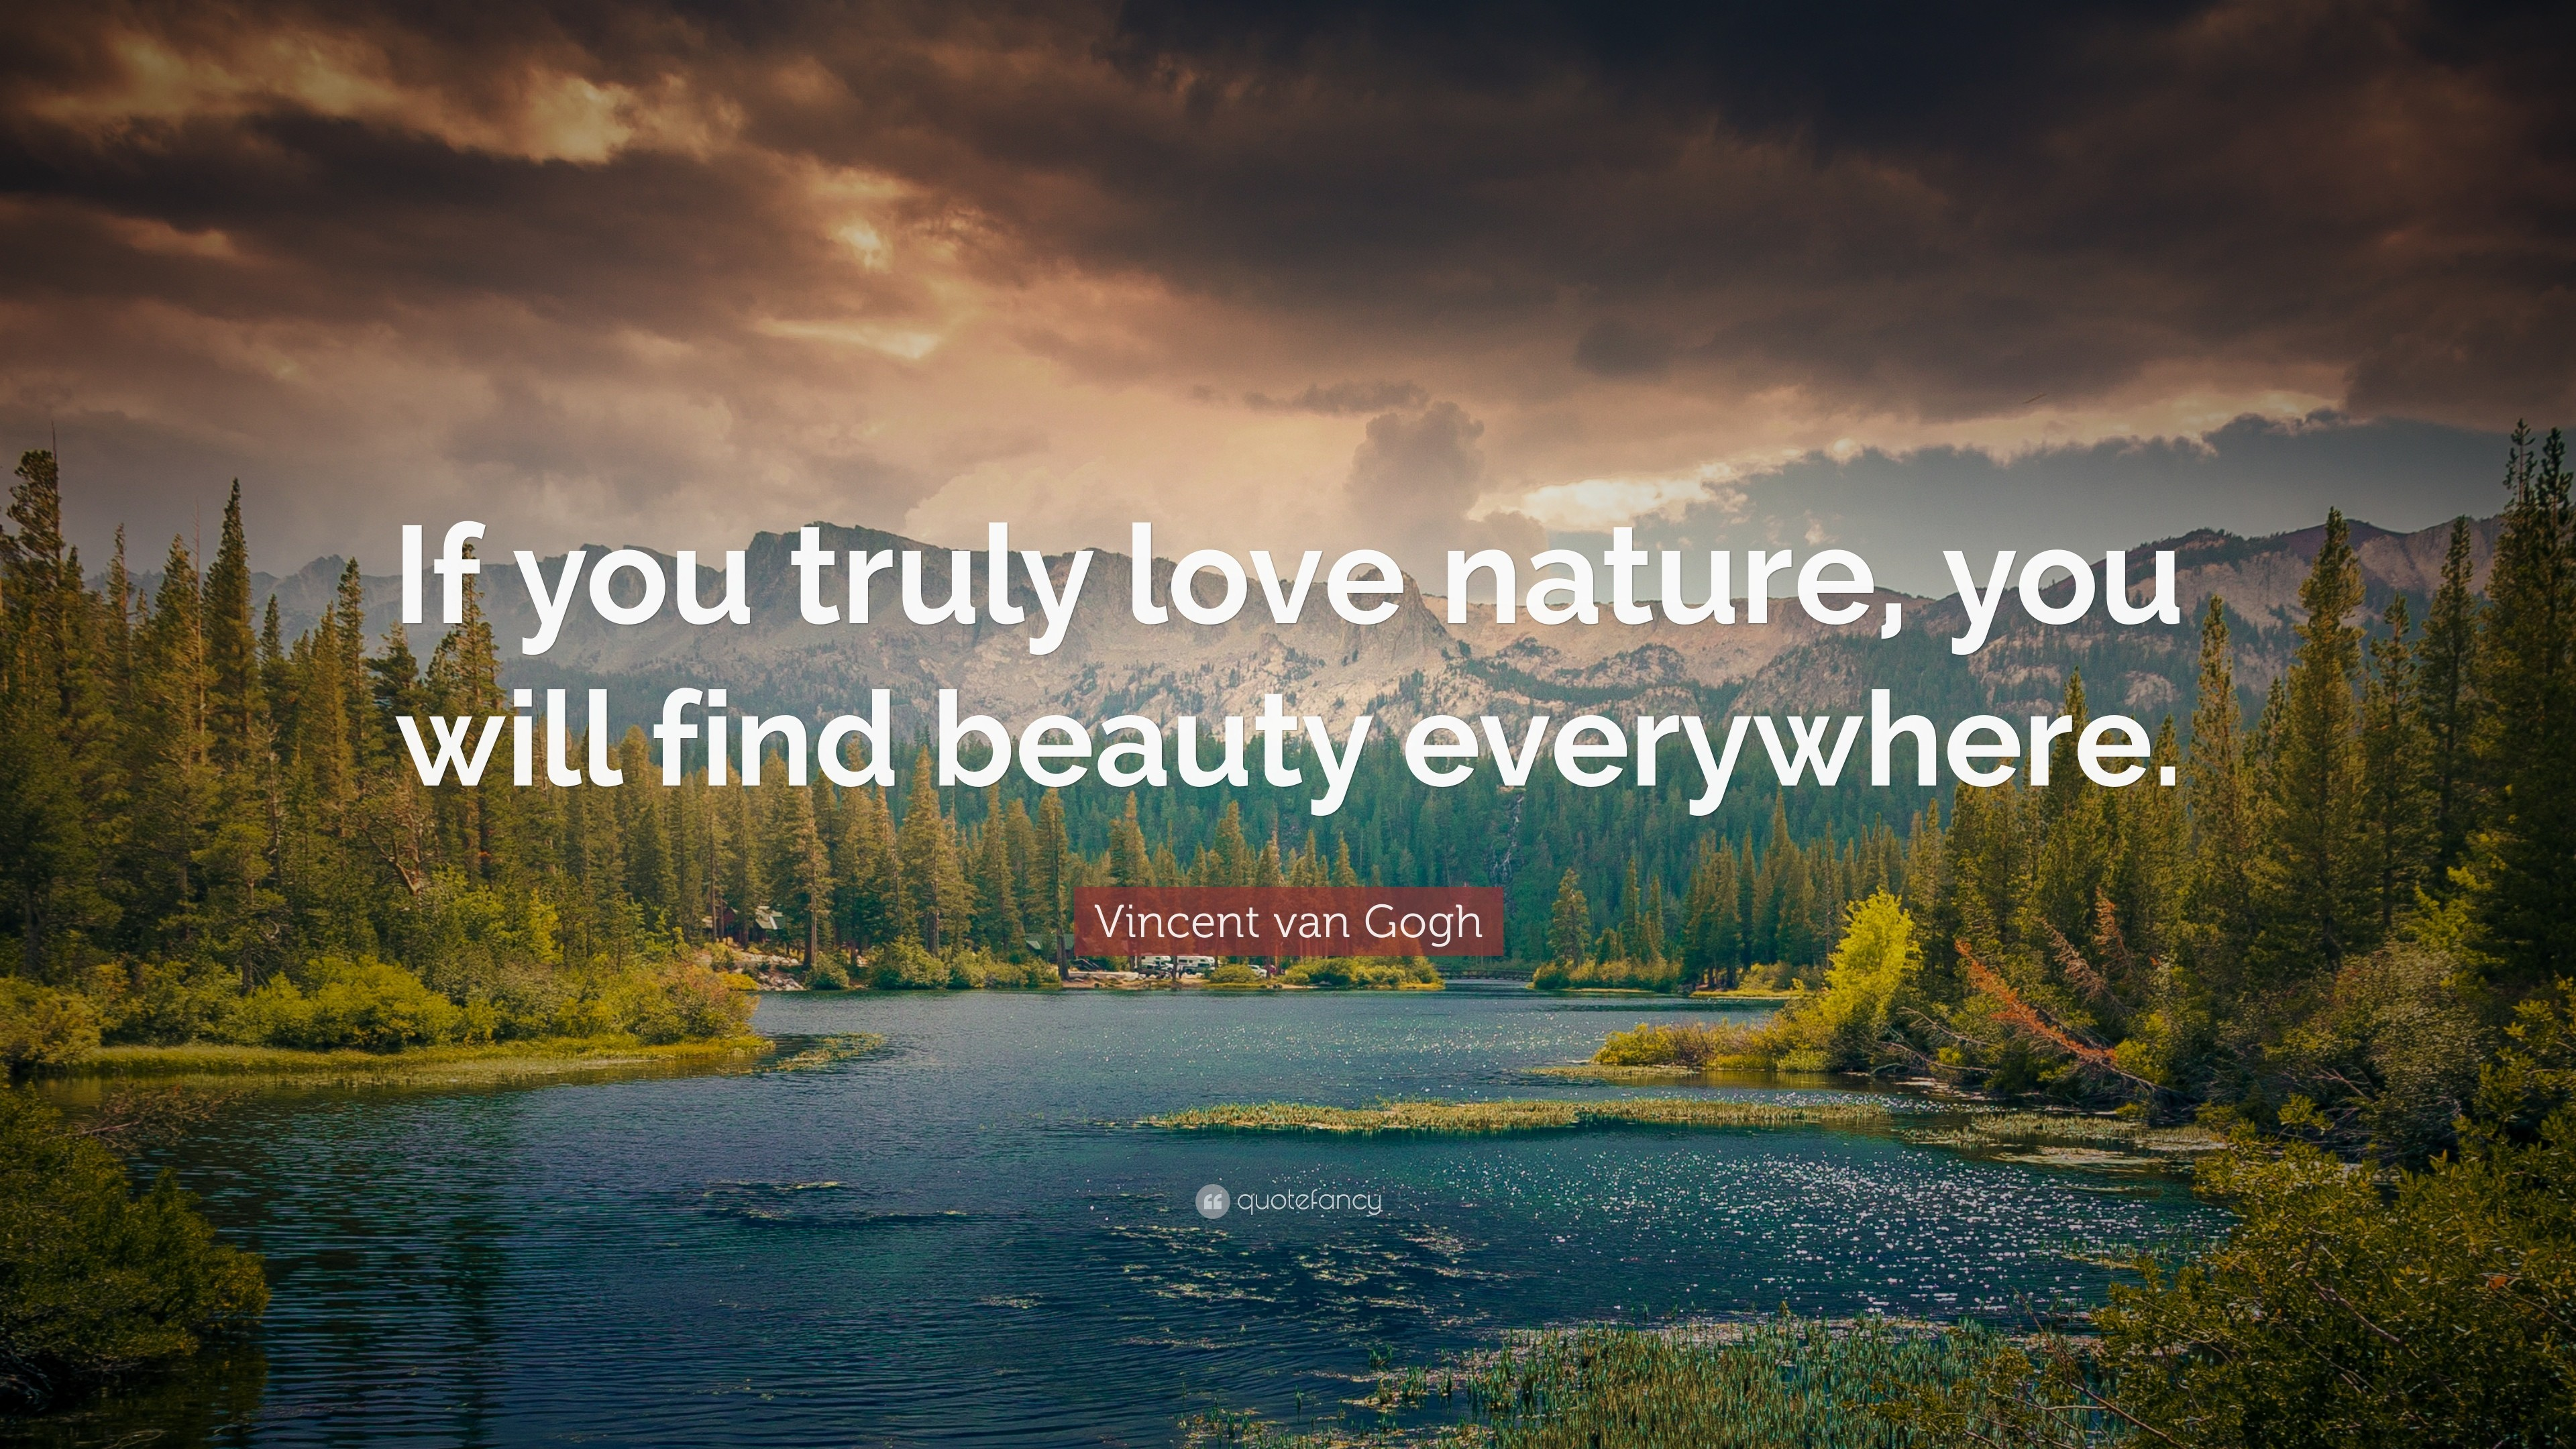 Love Nature Wallpaper Interiors Inside Ideas Interiors design about Everything [magnanprojects.com]